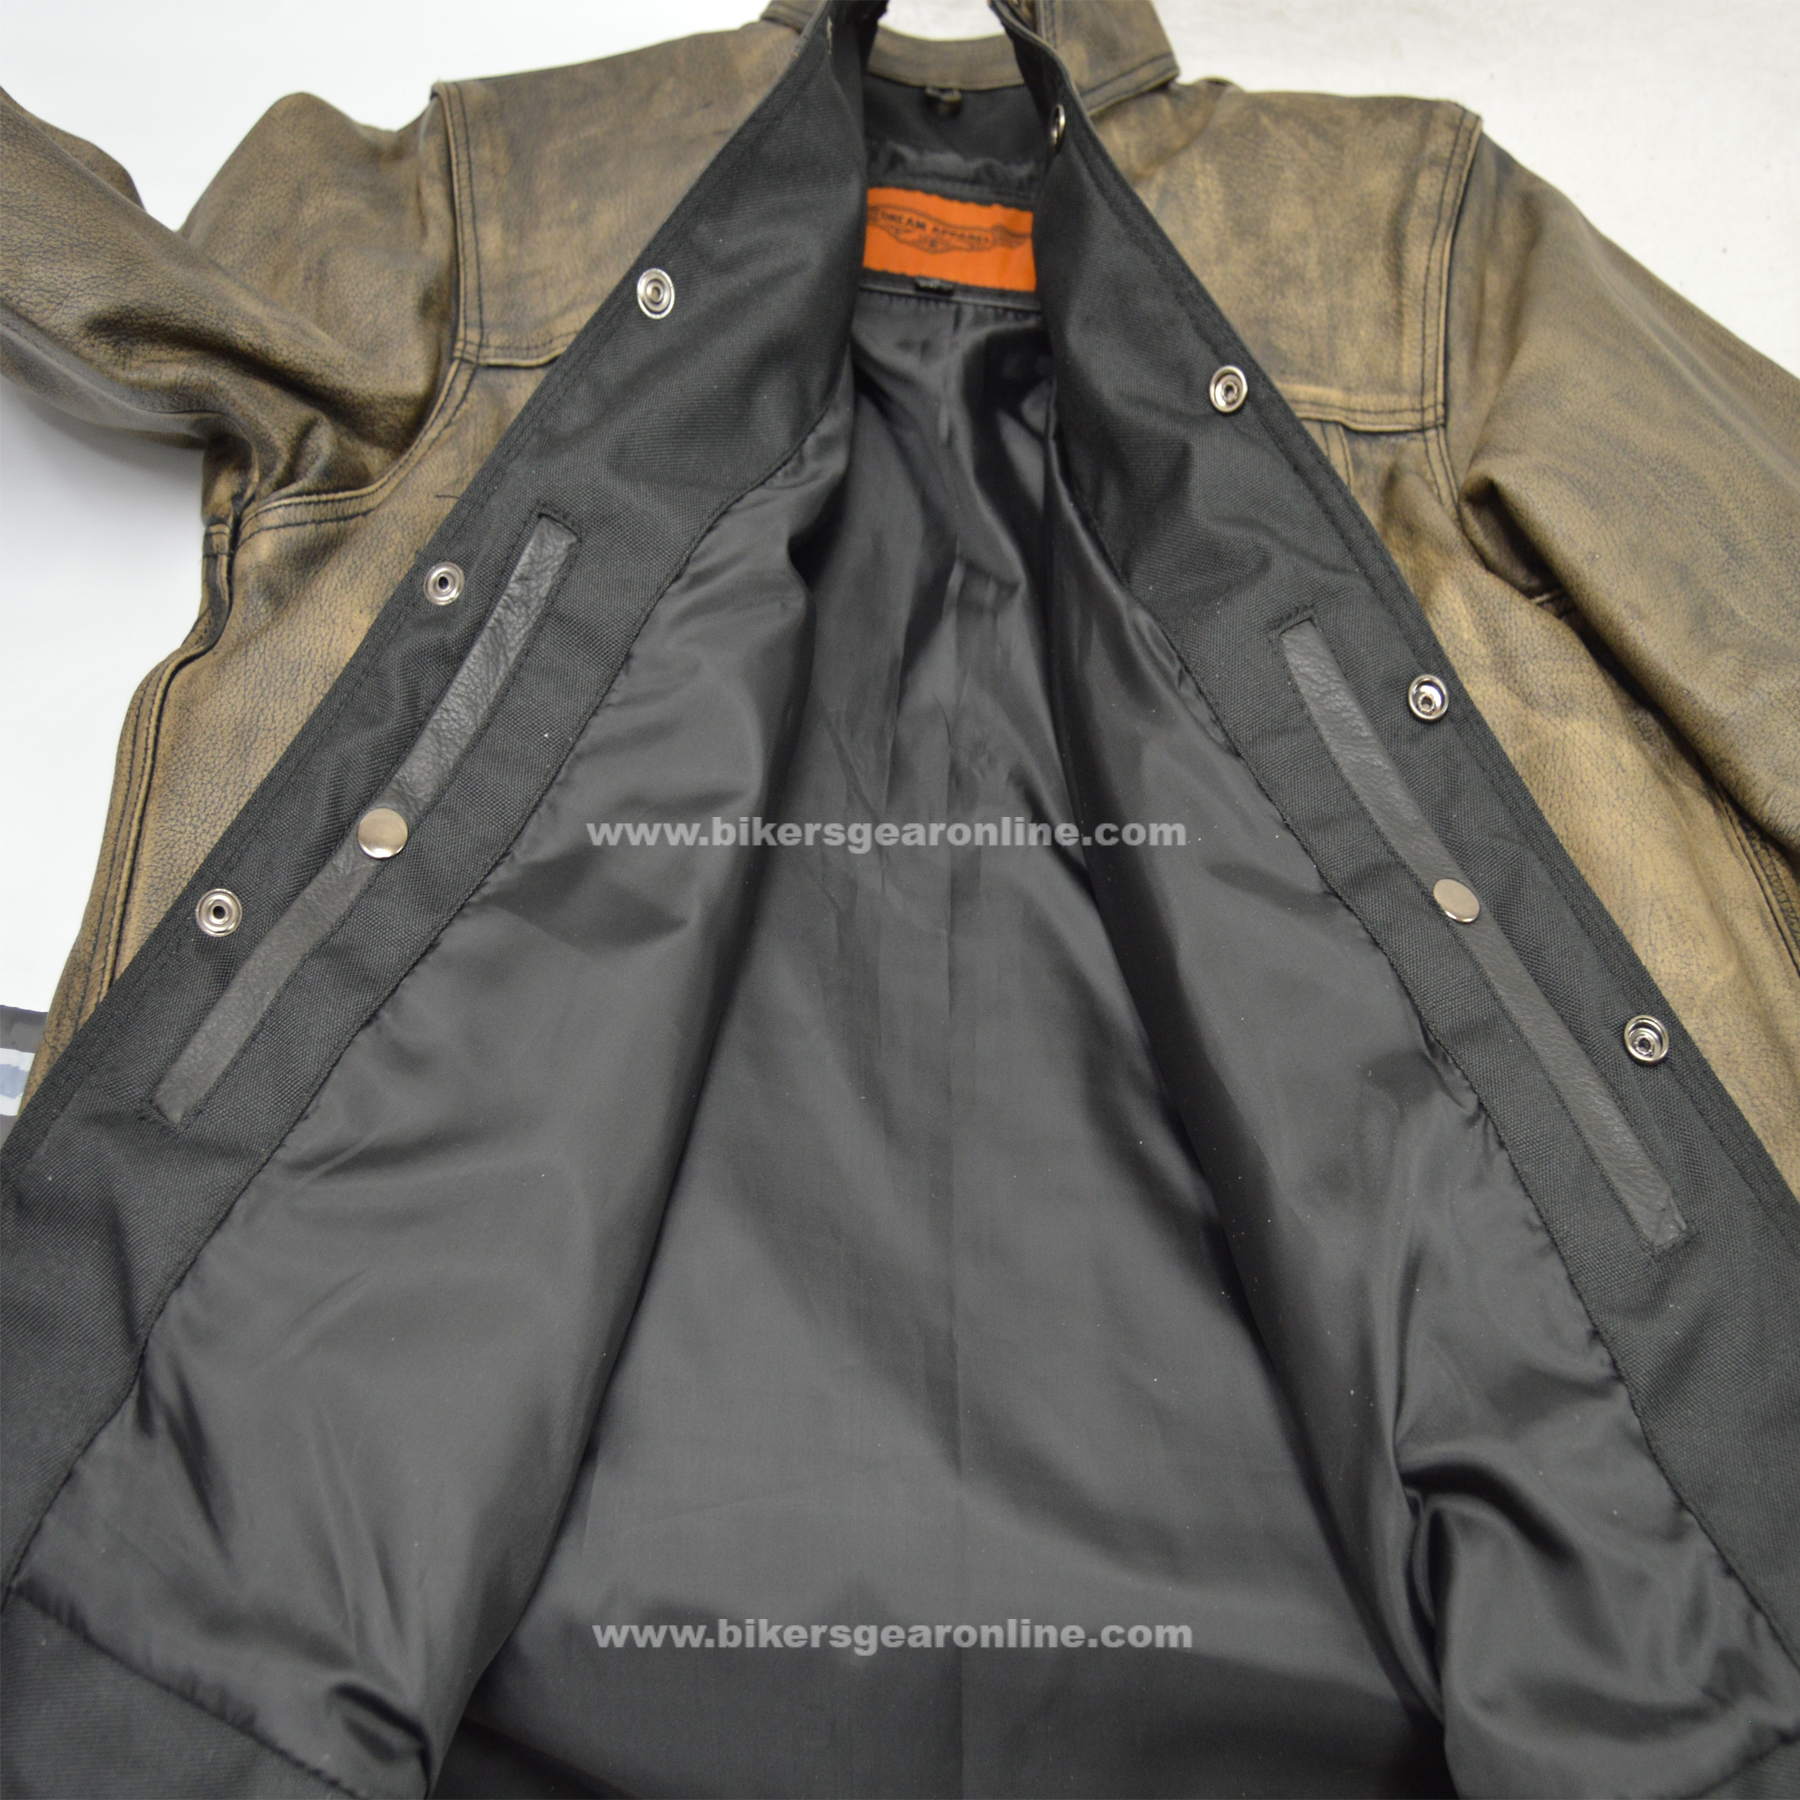 INSIDE Sample of Distressed Brown Leather Shirt